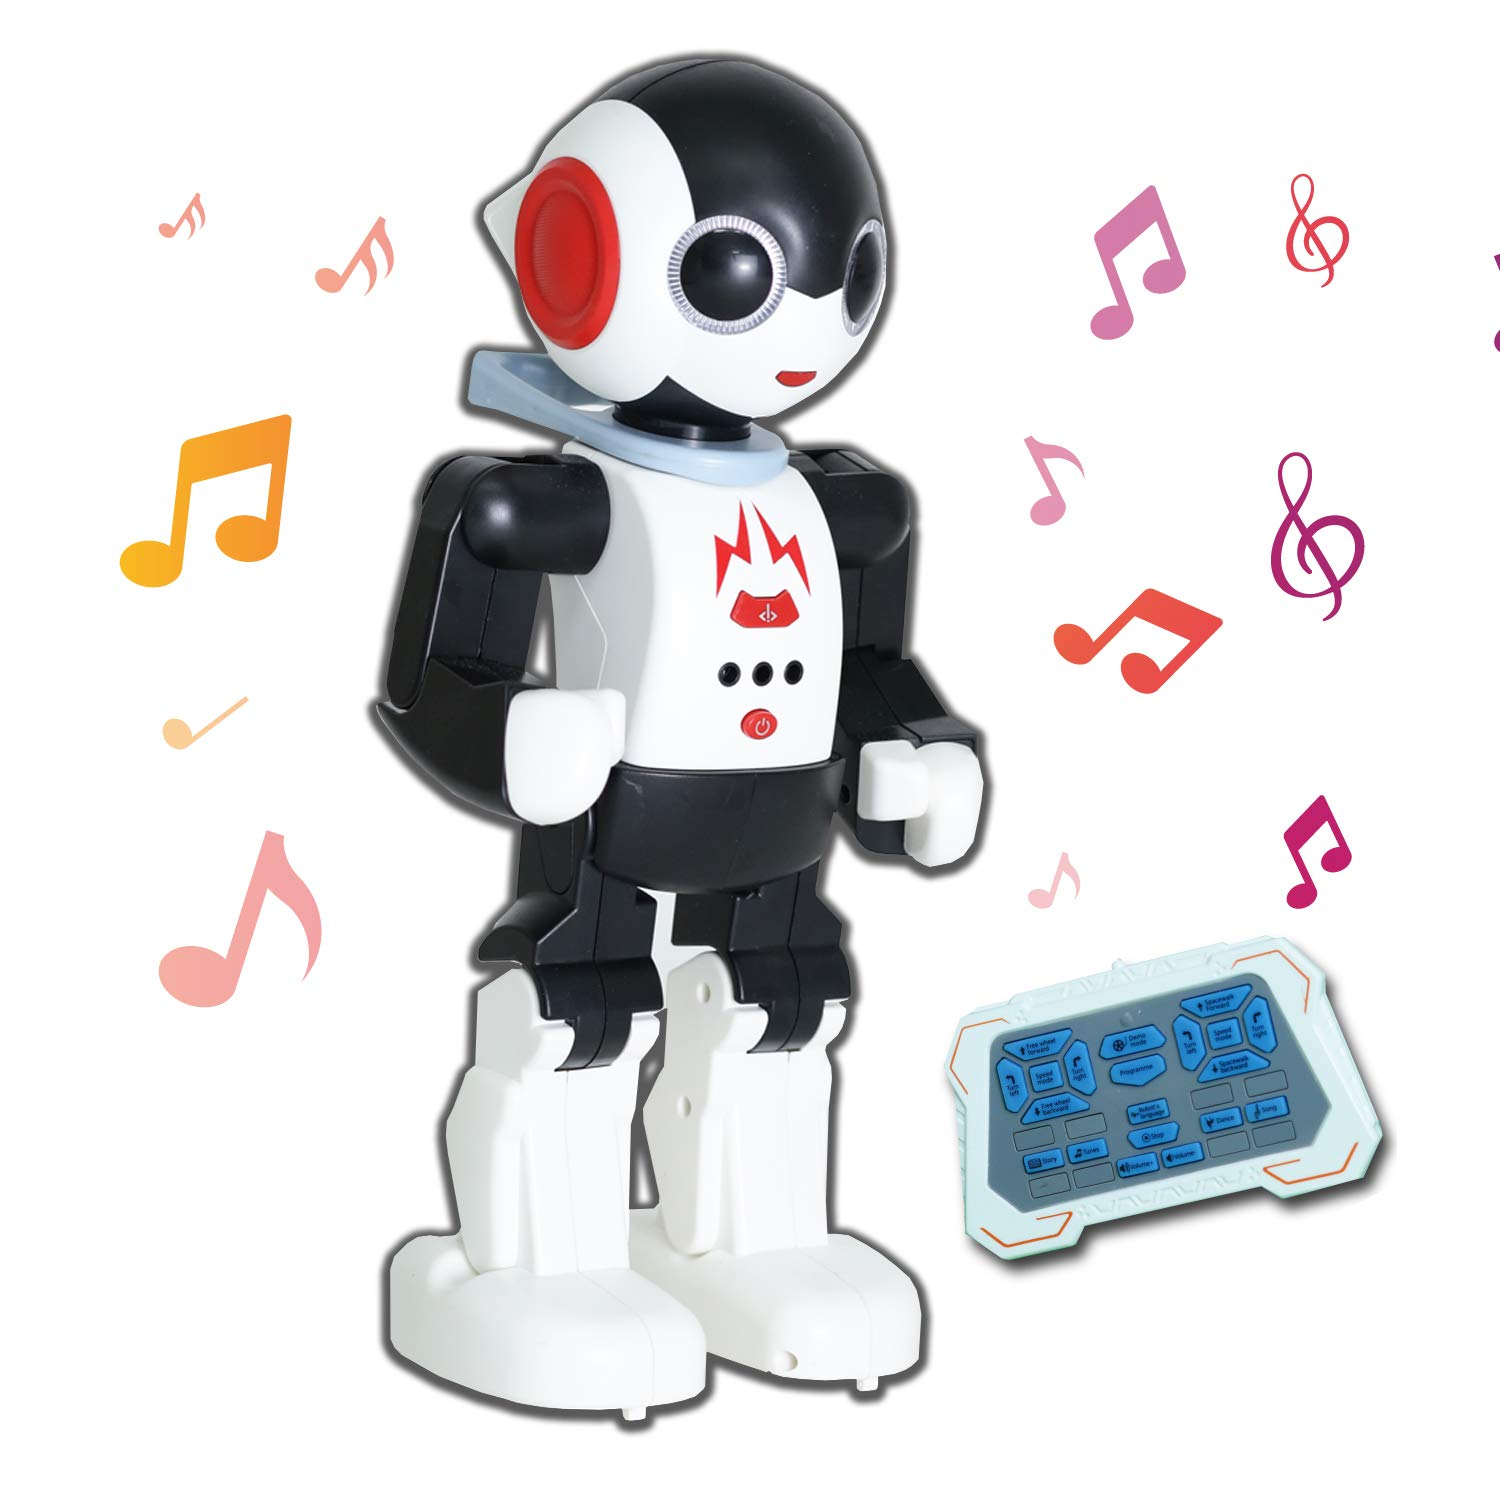 YARMOSHI Remote Control Intelligent Robot Toy - Walking, Talking, Dancing, Singing with Flashing Lights and Volume Control. USB Charging. Fun Gift for Girls and Boys Age 5+. by YARMOSHI